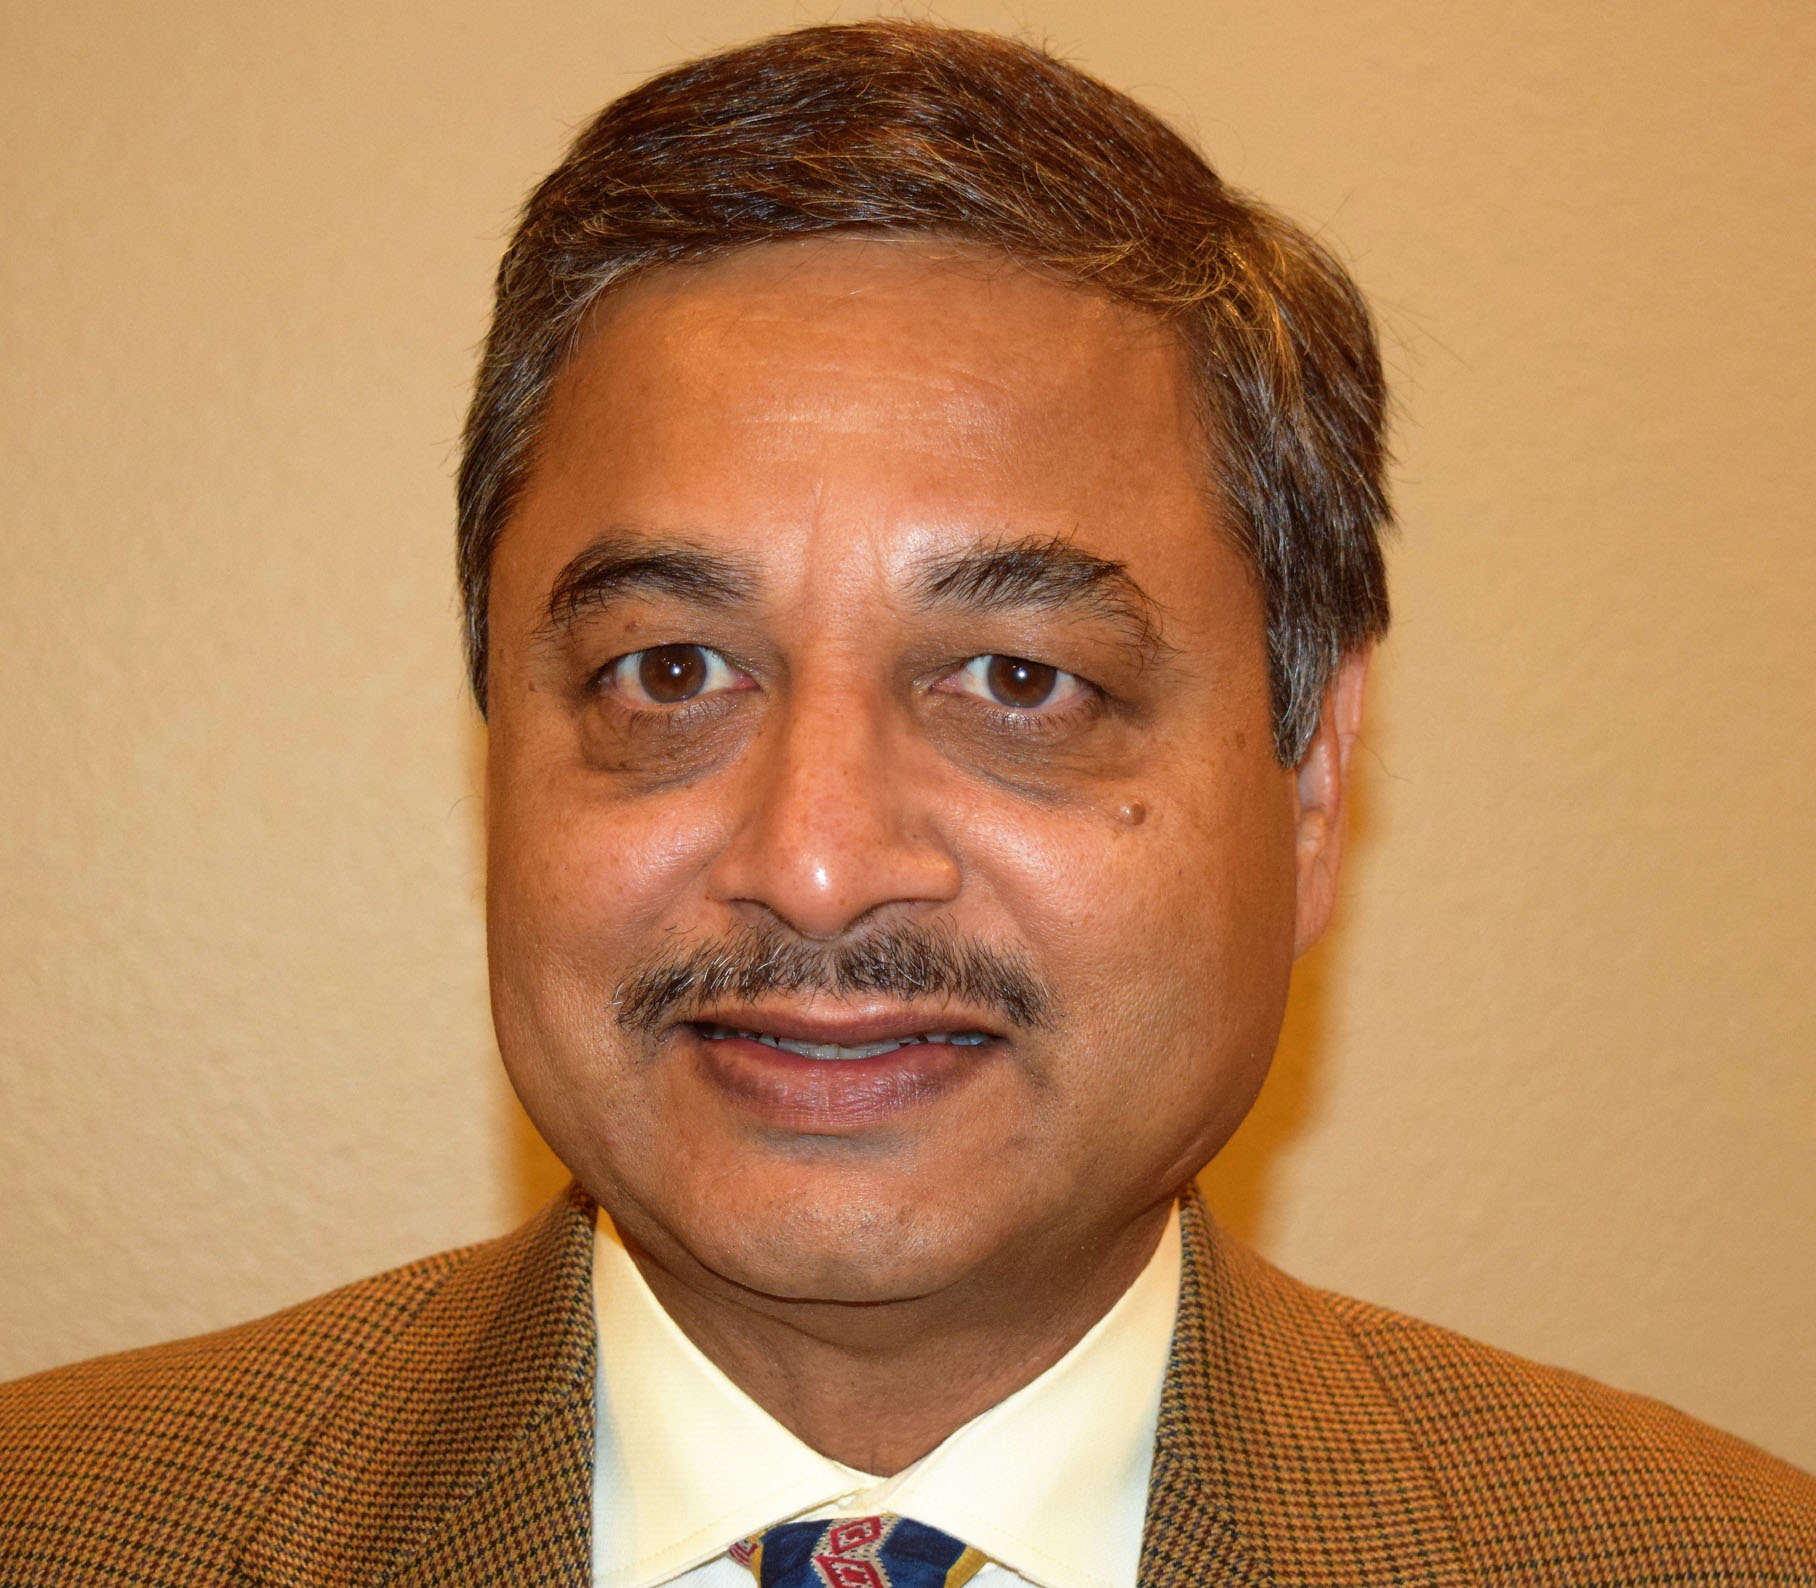 Deputy Director and Chief Information Officer, Office of Technology & Innovation - Naresh Baliga